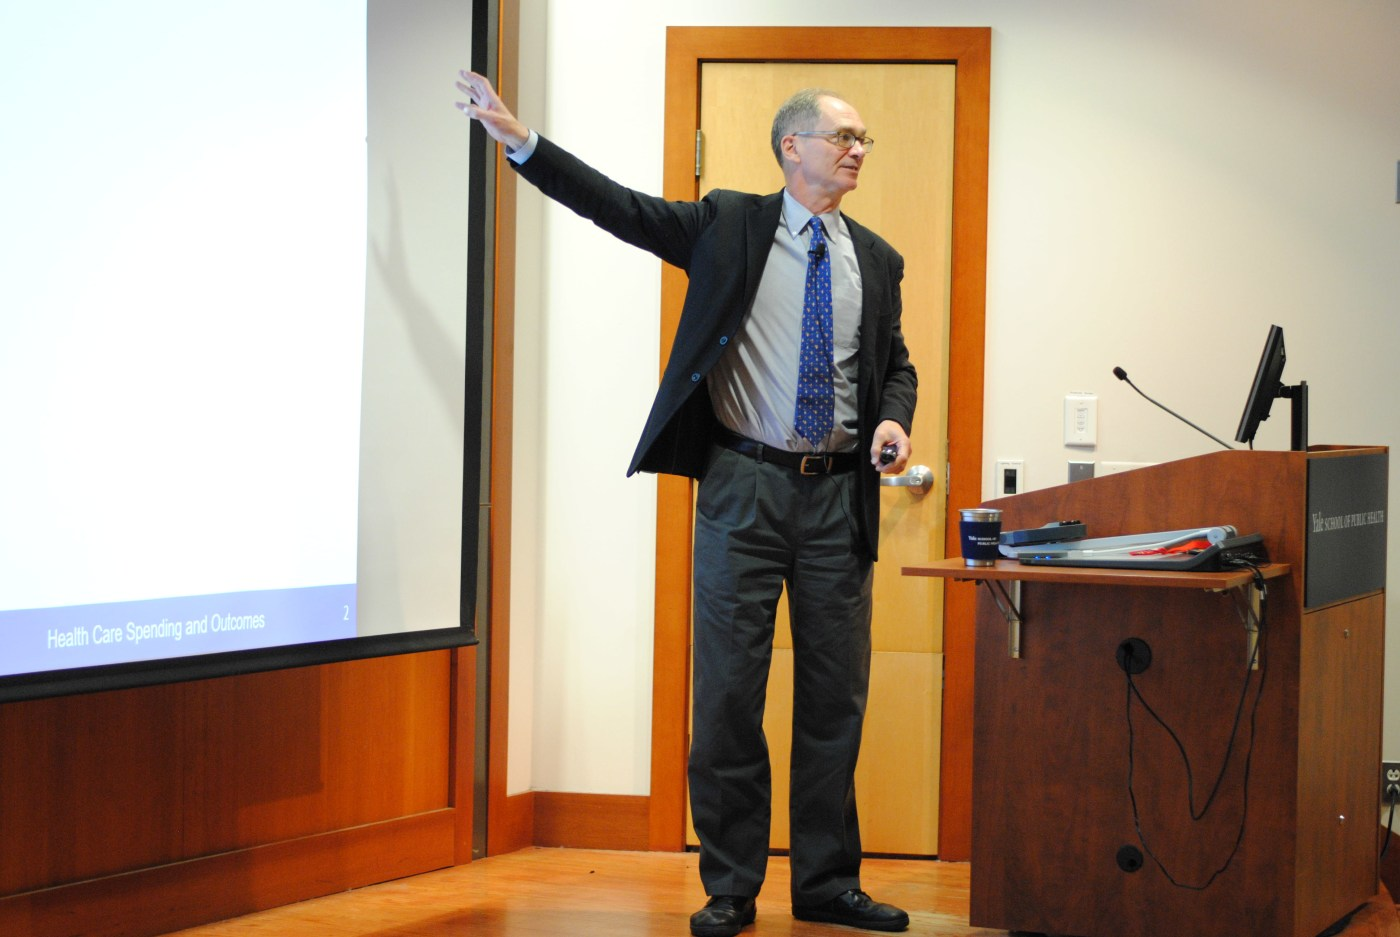 Jonathan Skinner, director of the Aging Program at the National Bureau of Economic Research, delivers the Dean's Lecture for the Yale School of Public Health's Program on Aging Seminar on Nov. 6.